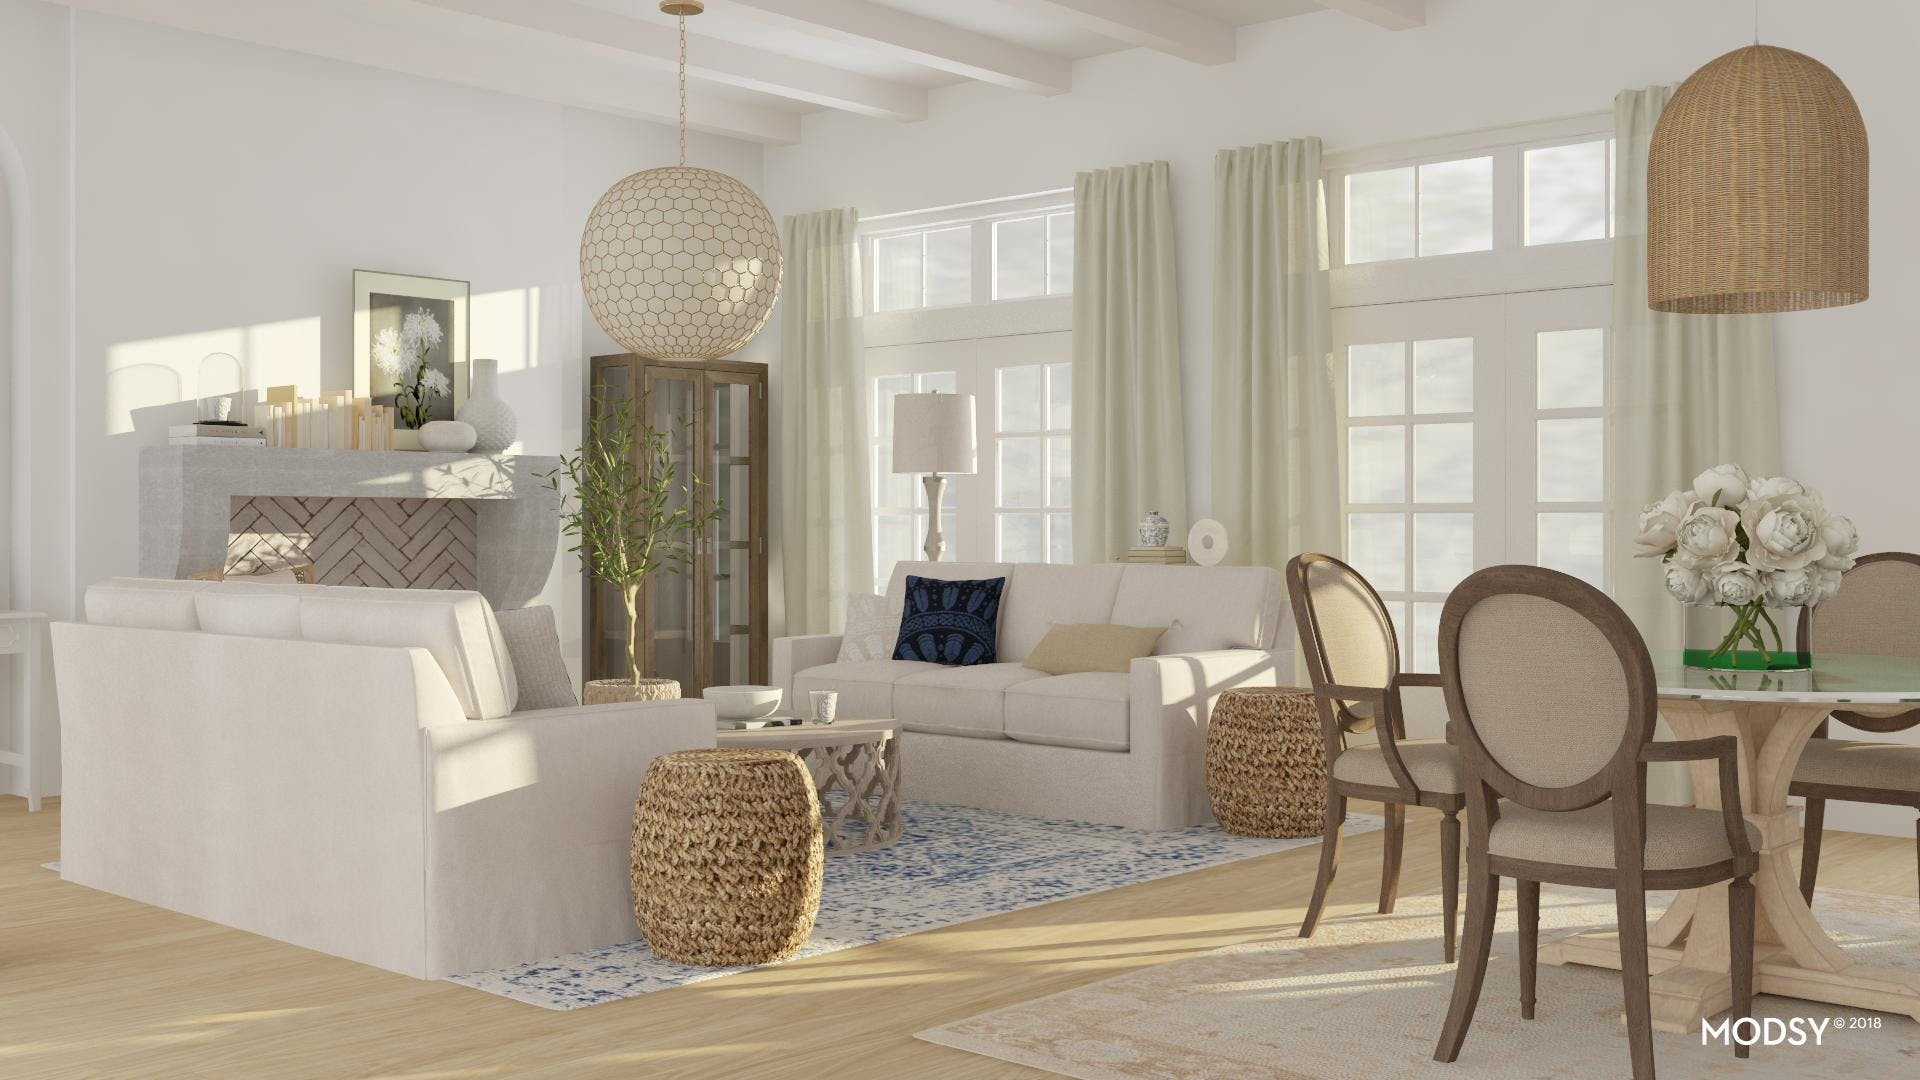 Creating Balance In A Refined-Rustic Room